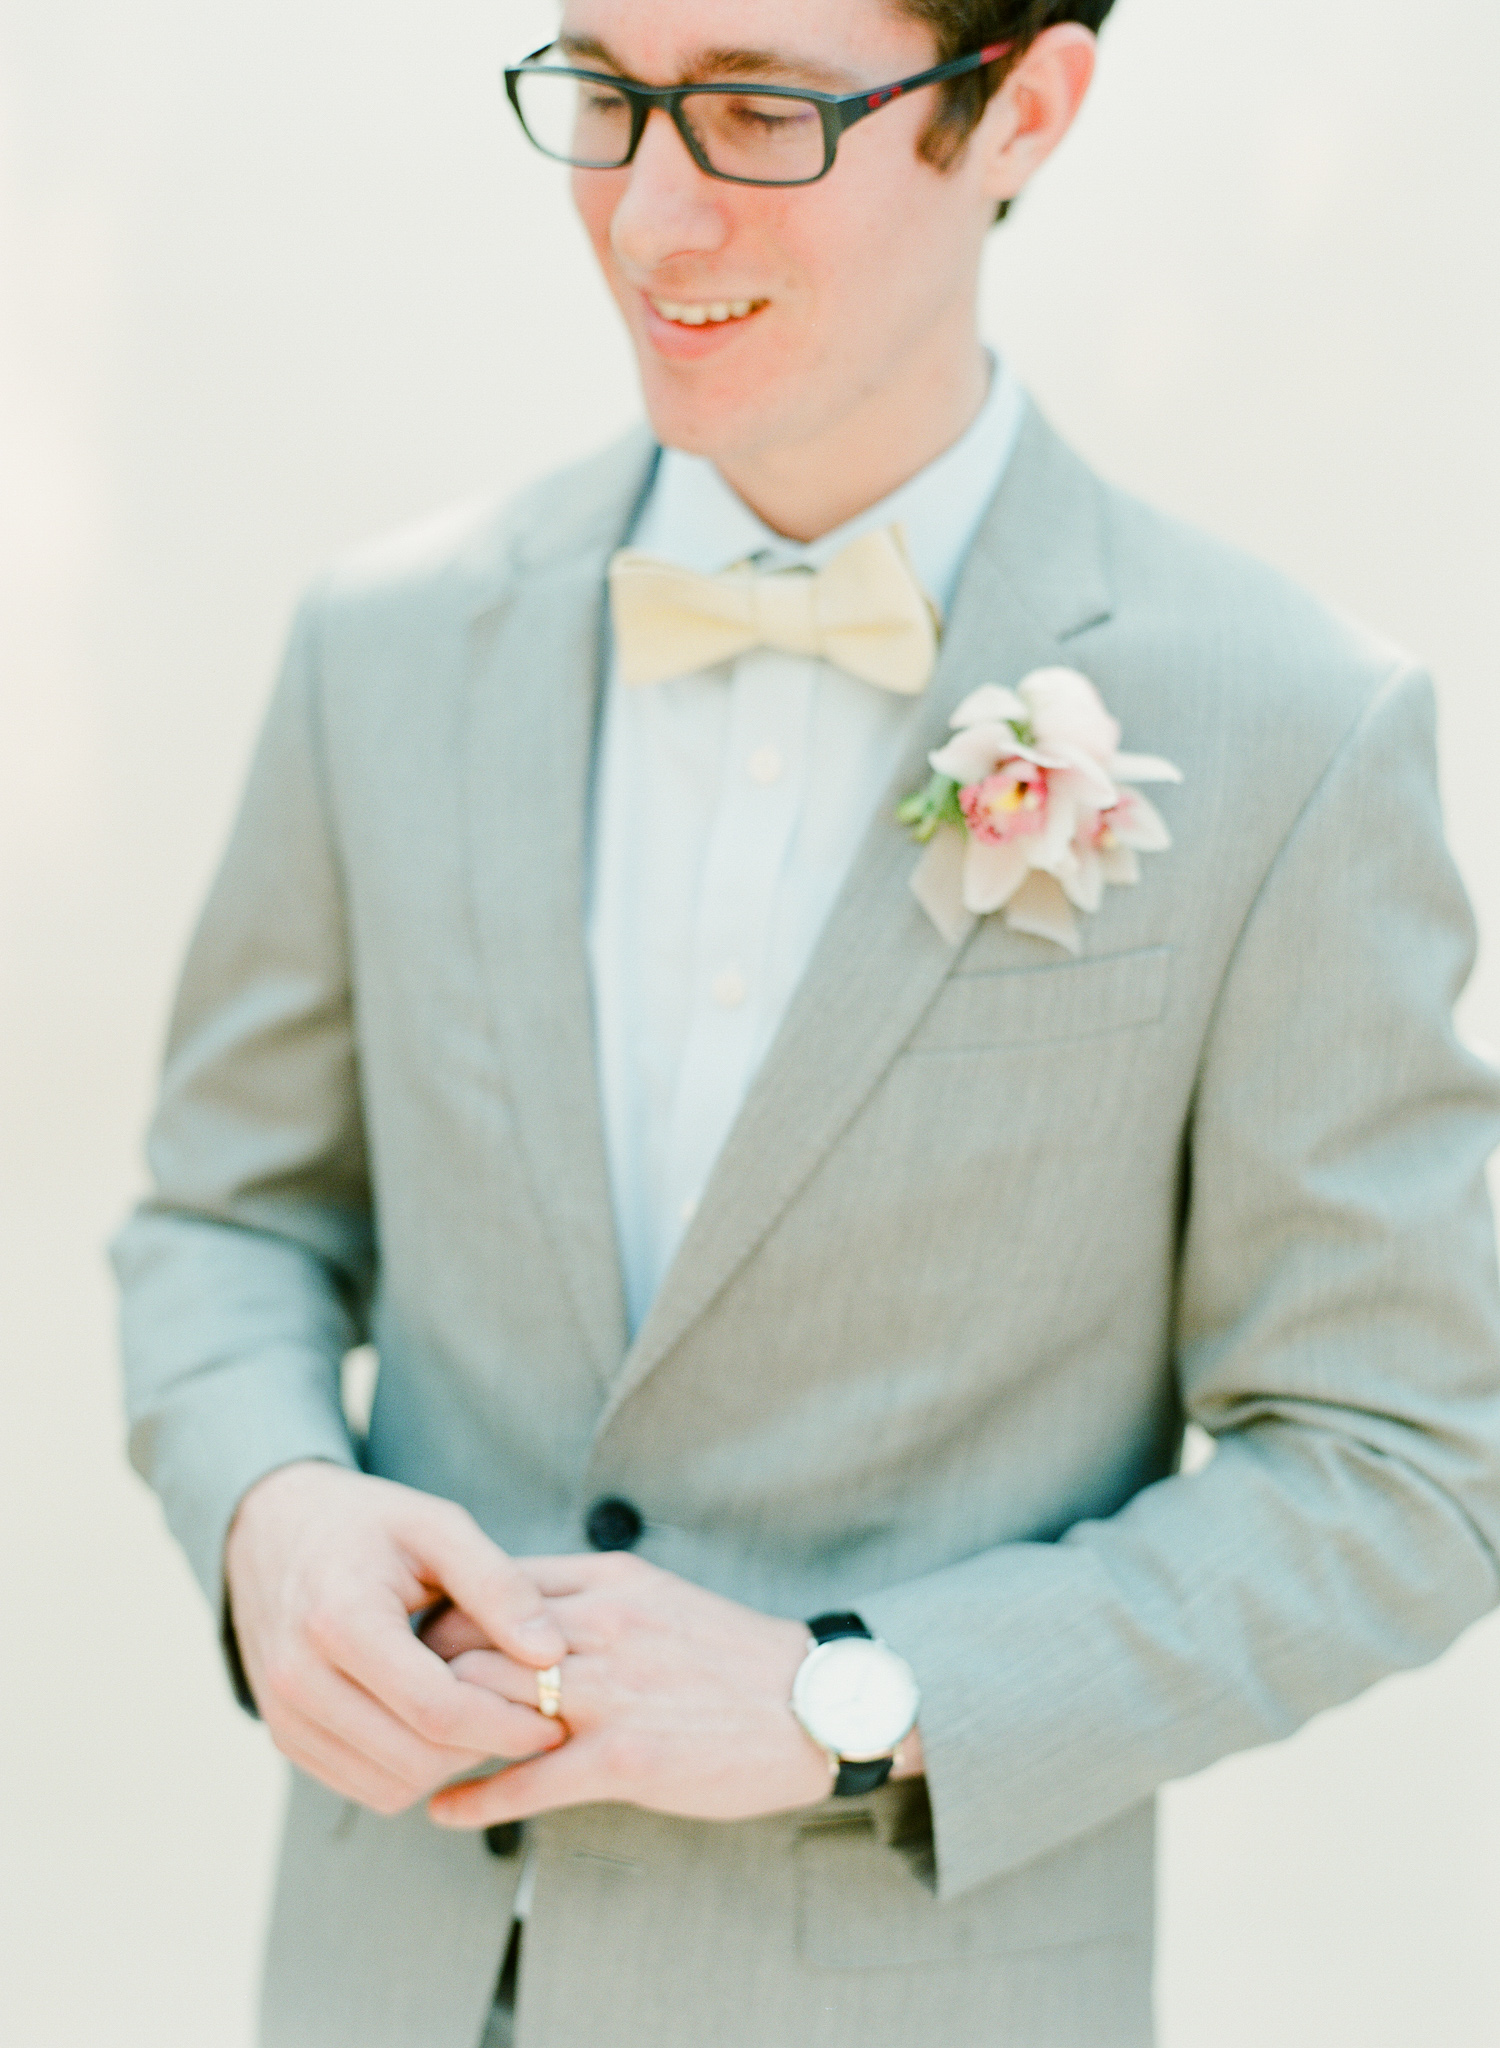 Charleston-Wedding-Photographer-58.jpg